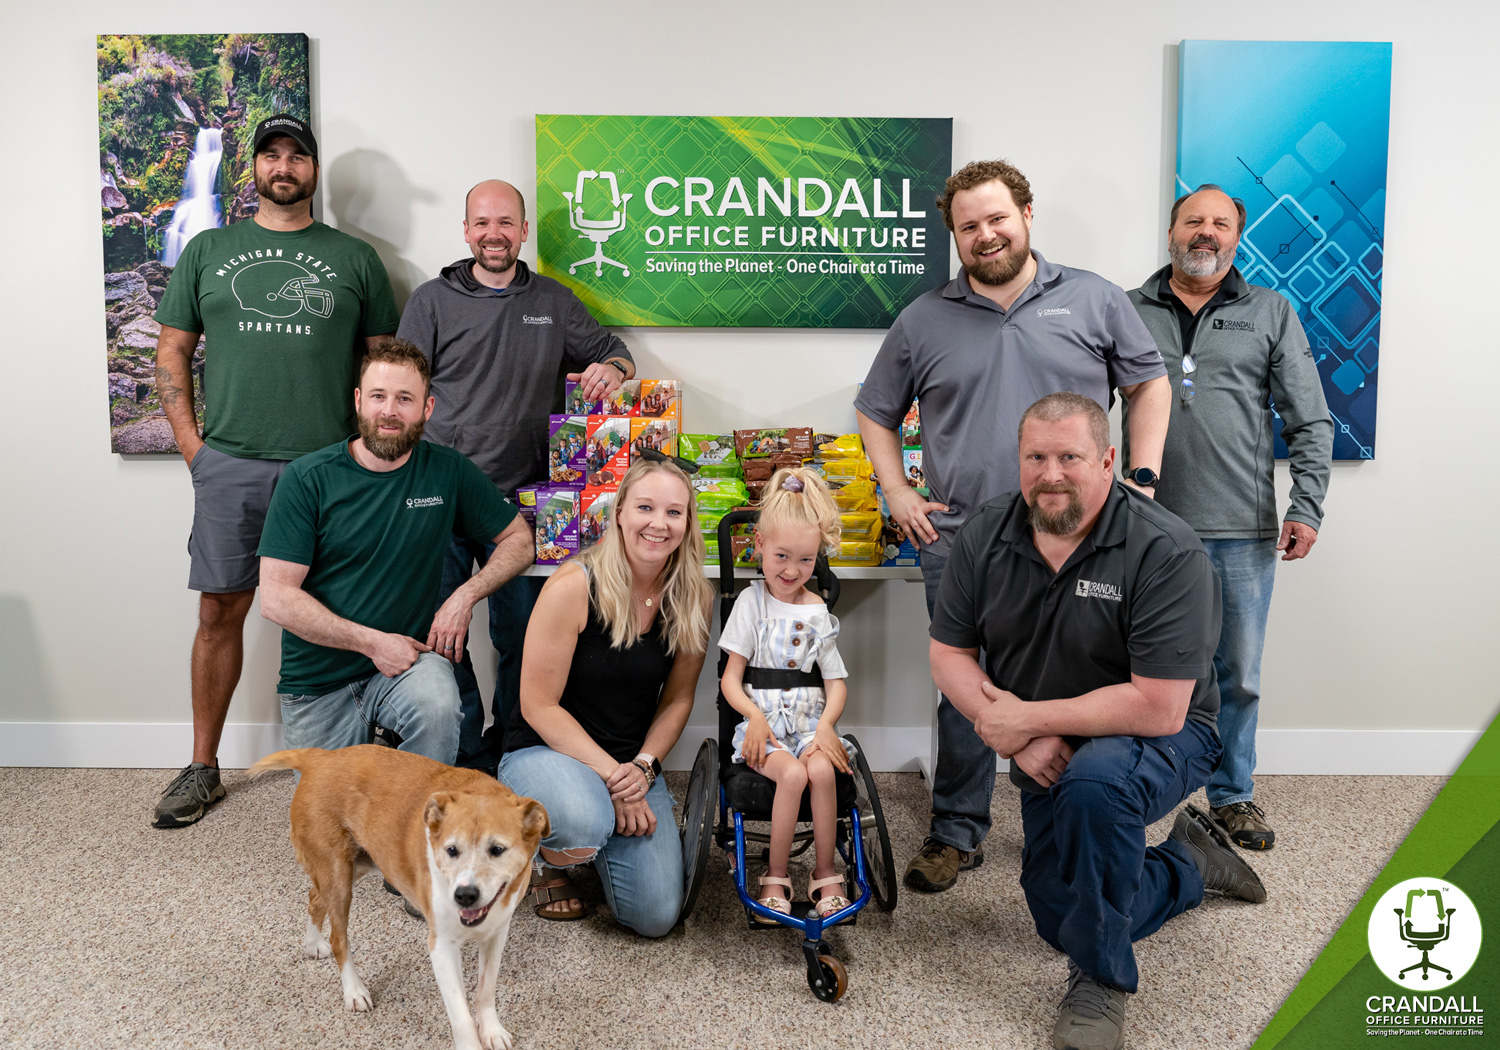 Crandall Office Furniture - Lylah Strong - Cure SMA Group Photo